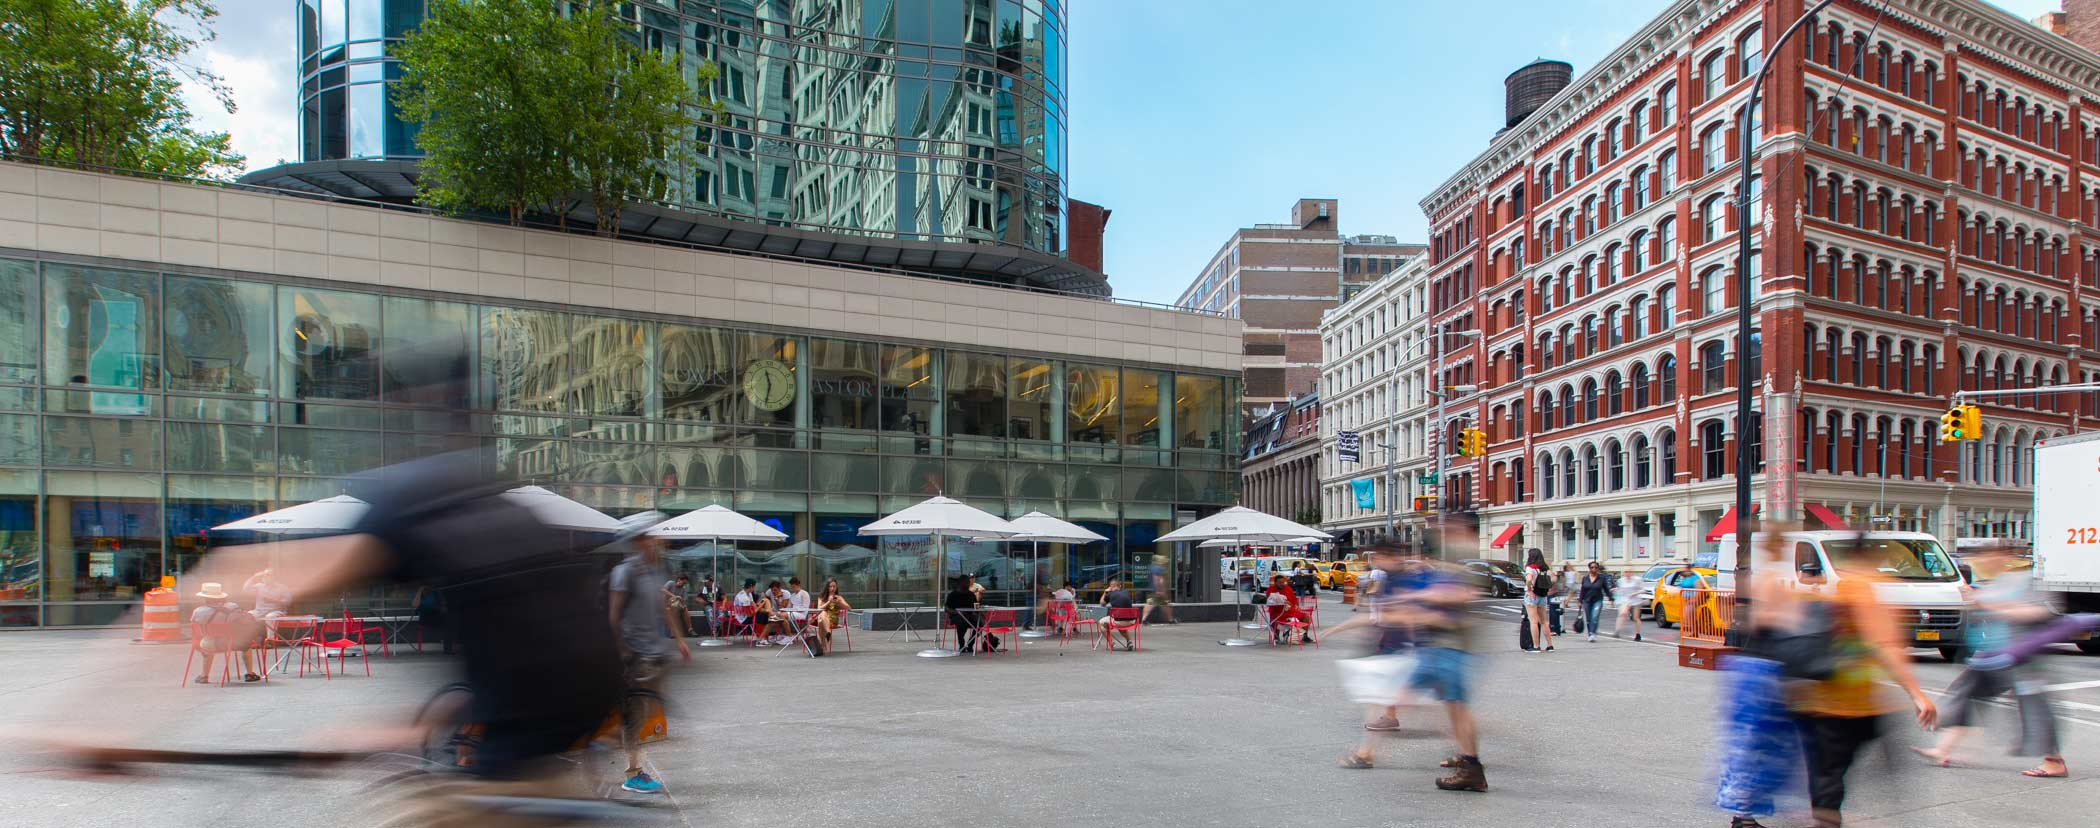 people walking around the newly reconstructed astor place.